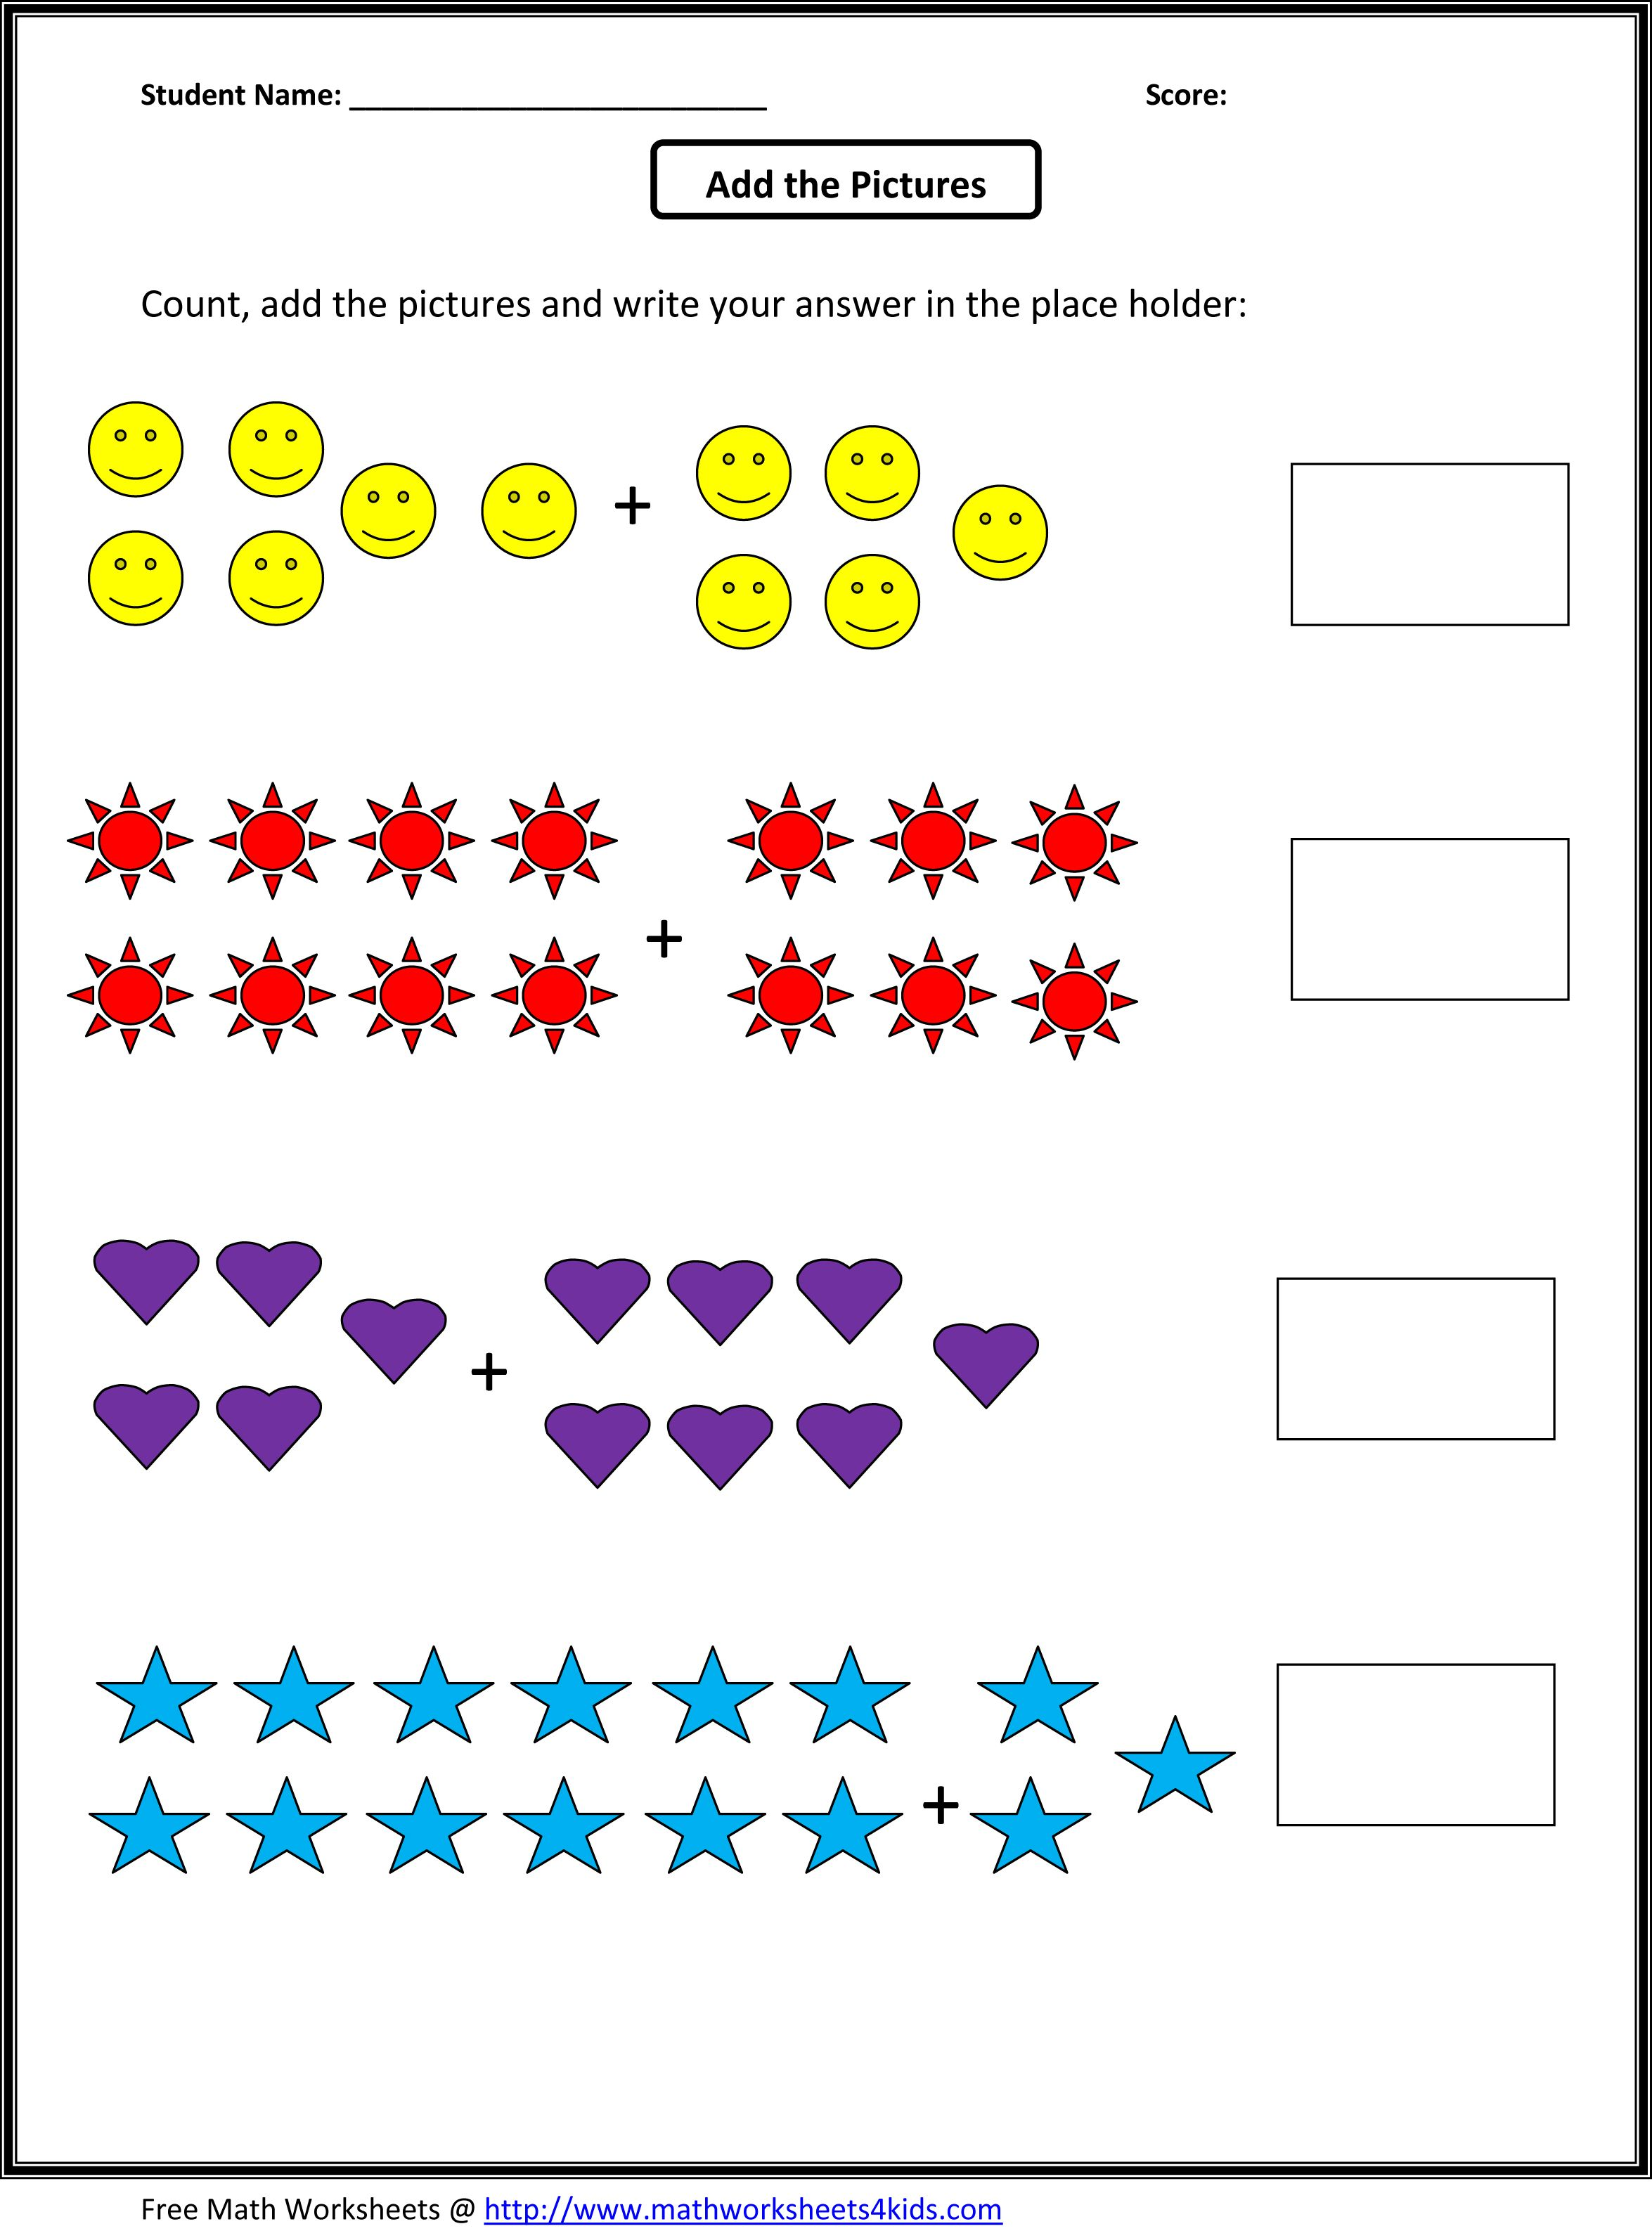 Worksheets Math Worksheet For Grade 1 grade 1 addition math worksheets first worksheets